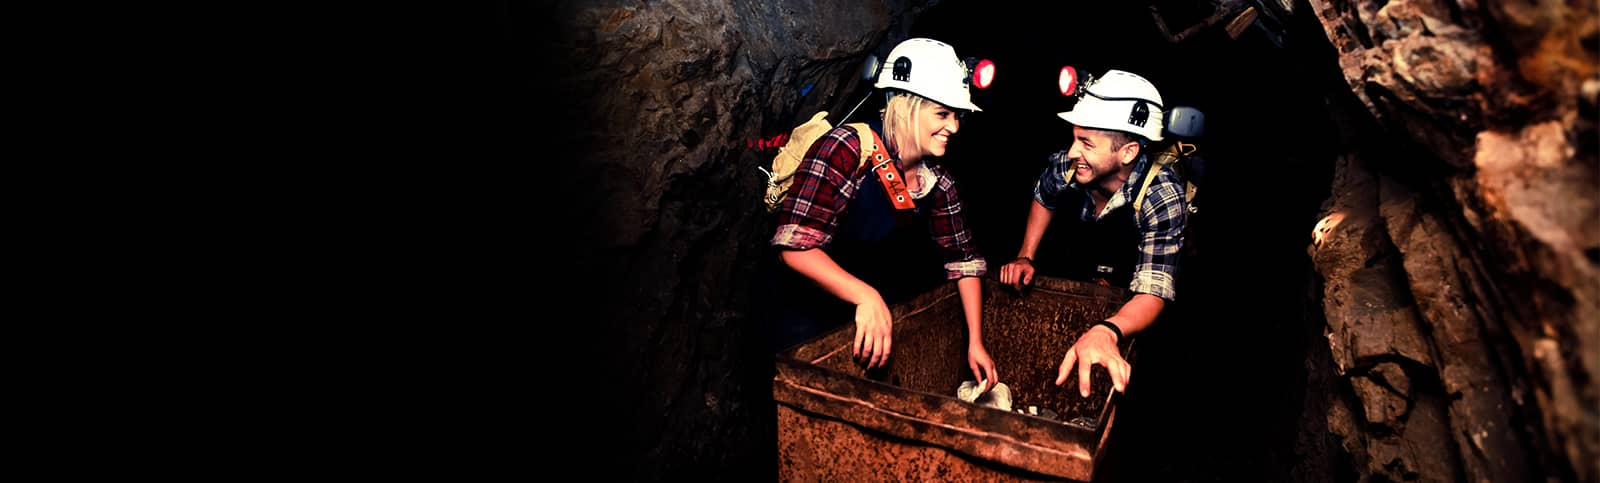 Visitors pushing an Ore Truck on a Nine Levels of Darkness Tour